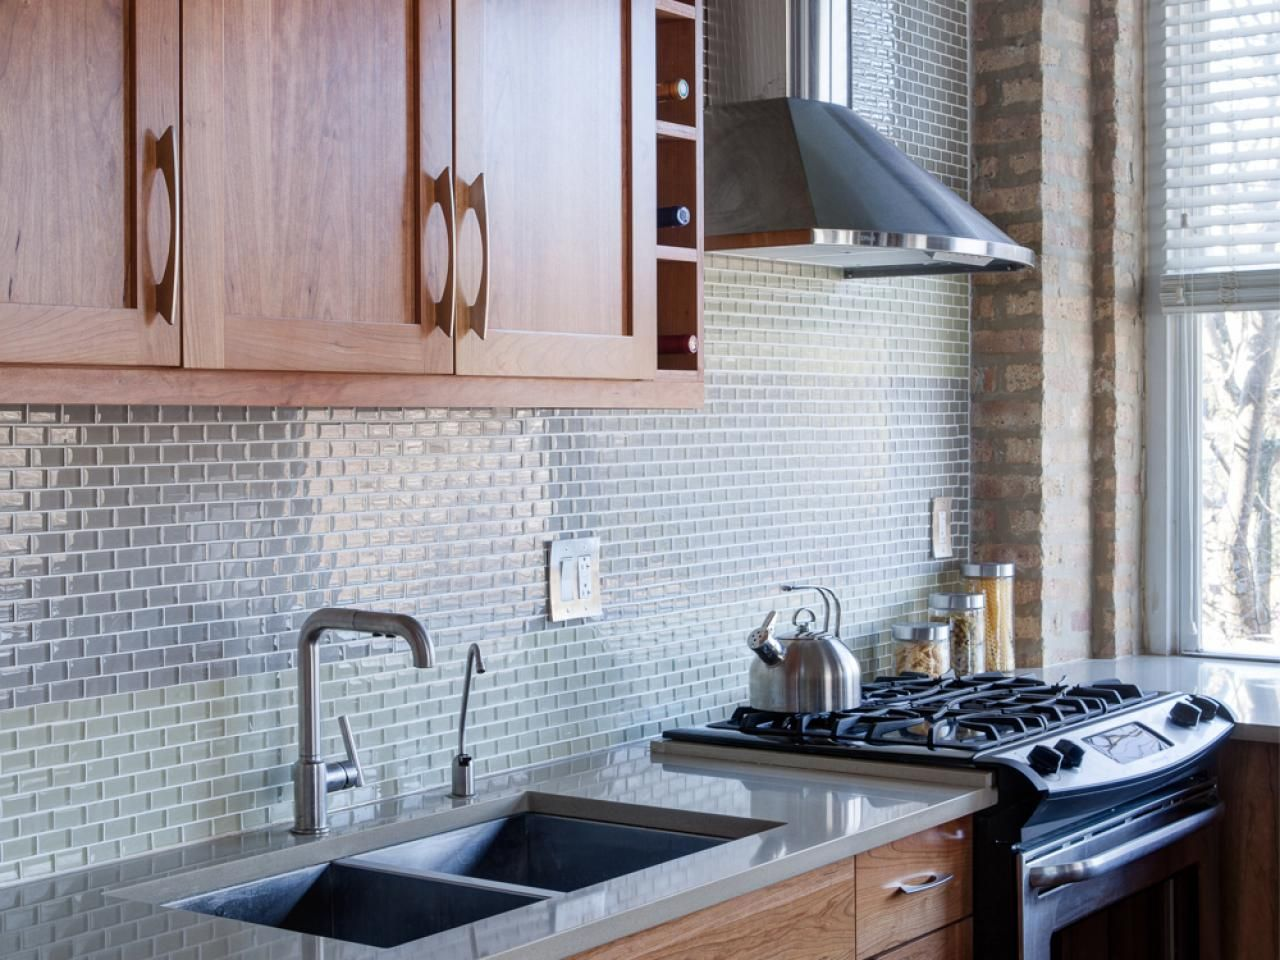 Pictures of Kitchen Backsplash Ideas From | Backsplash ideas, Hgtv ...